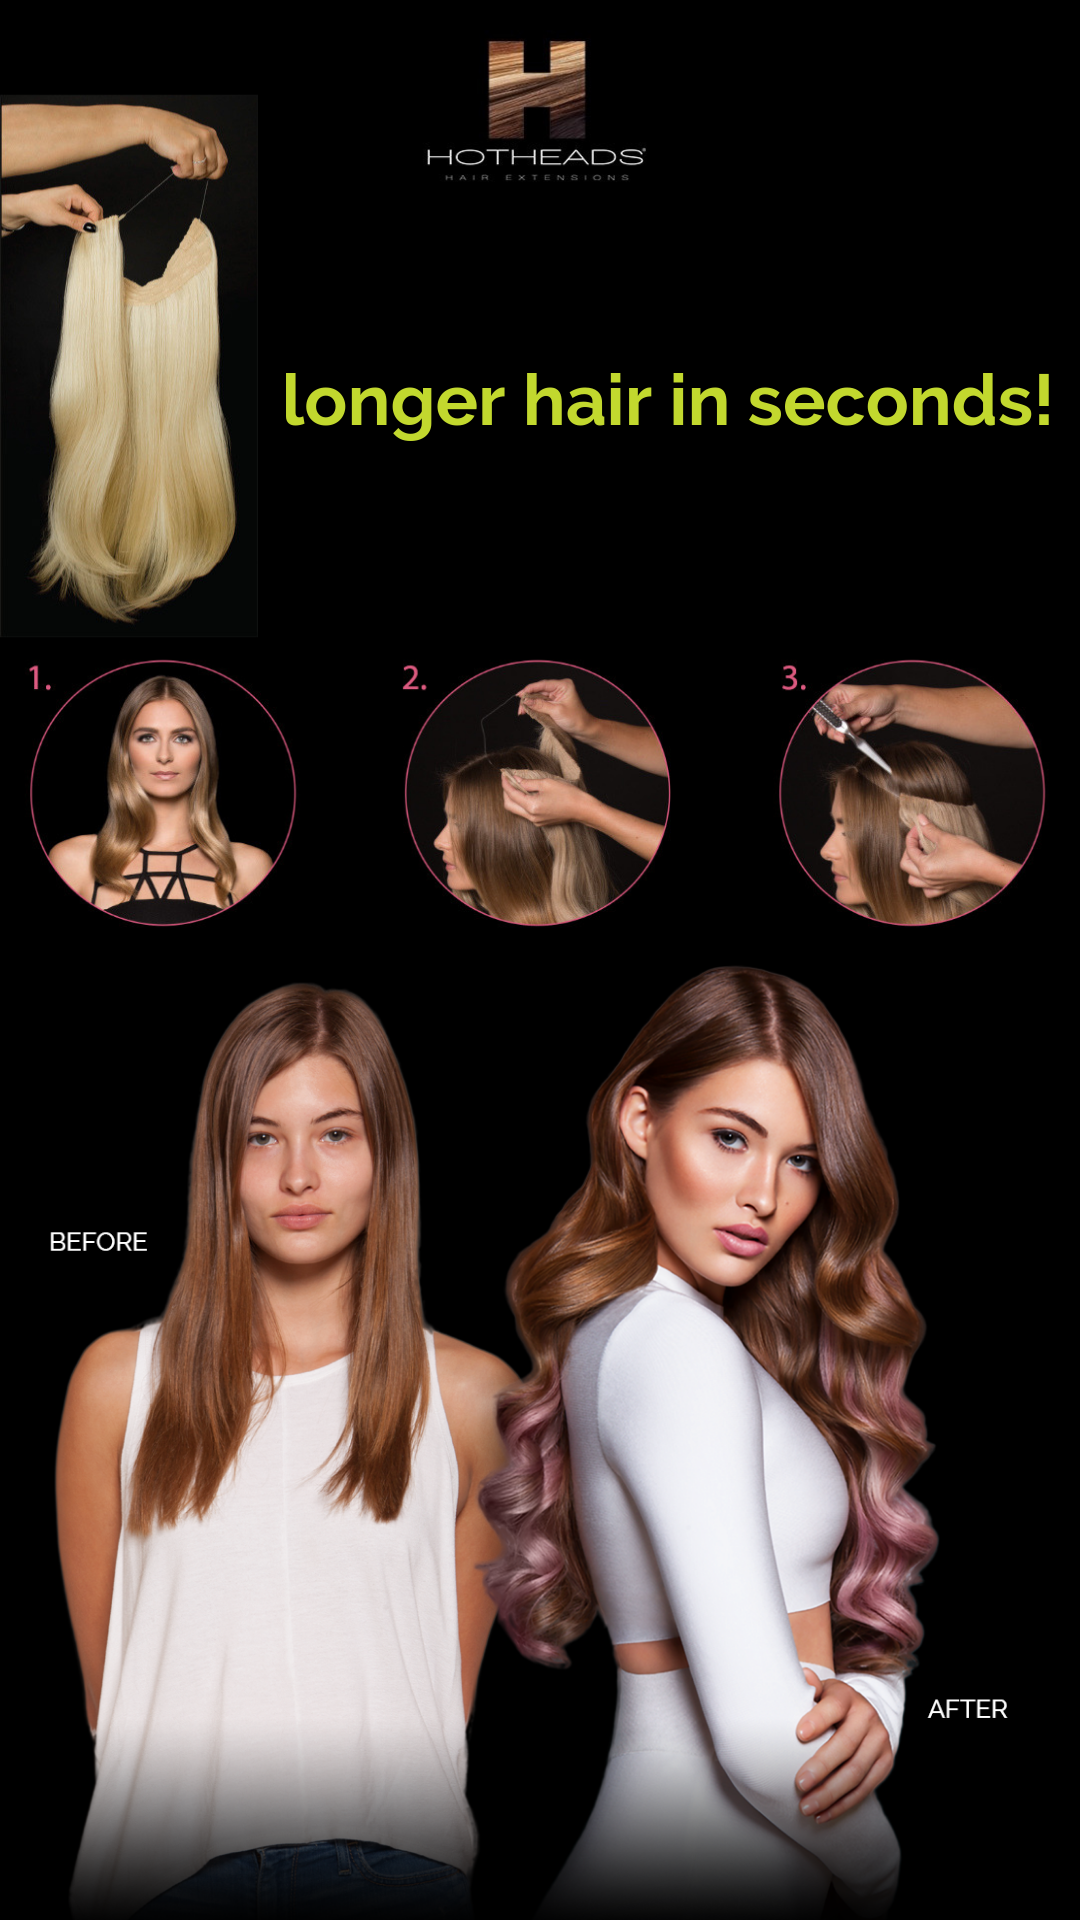 hot heads hair extensions, the band, headband extensions, longer hair, thicker hair, maple grove, minnesota, minneapolis, plymouth, best salon